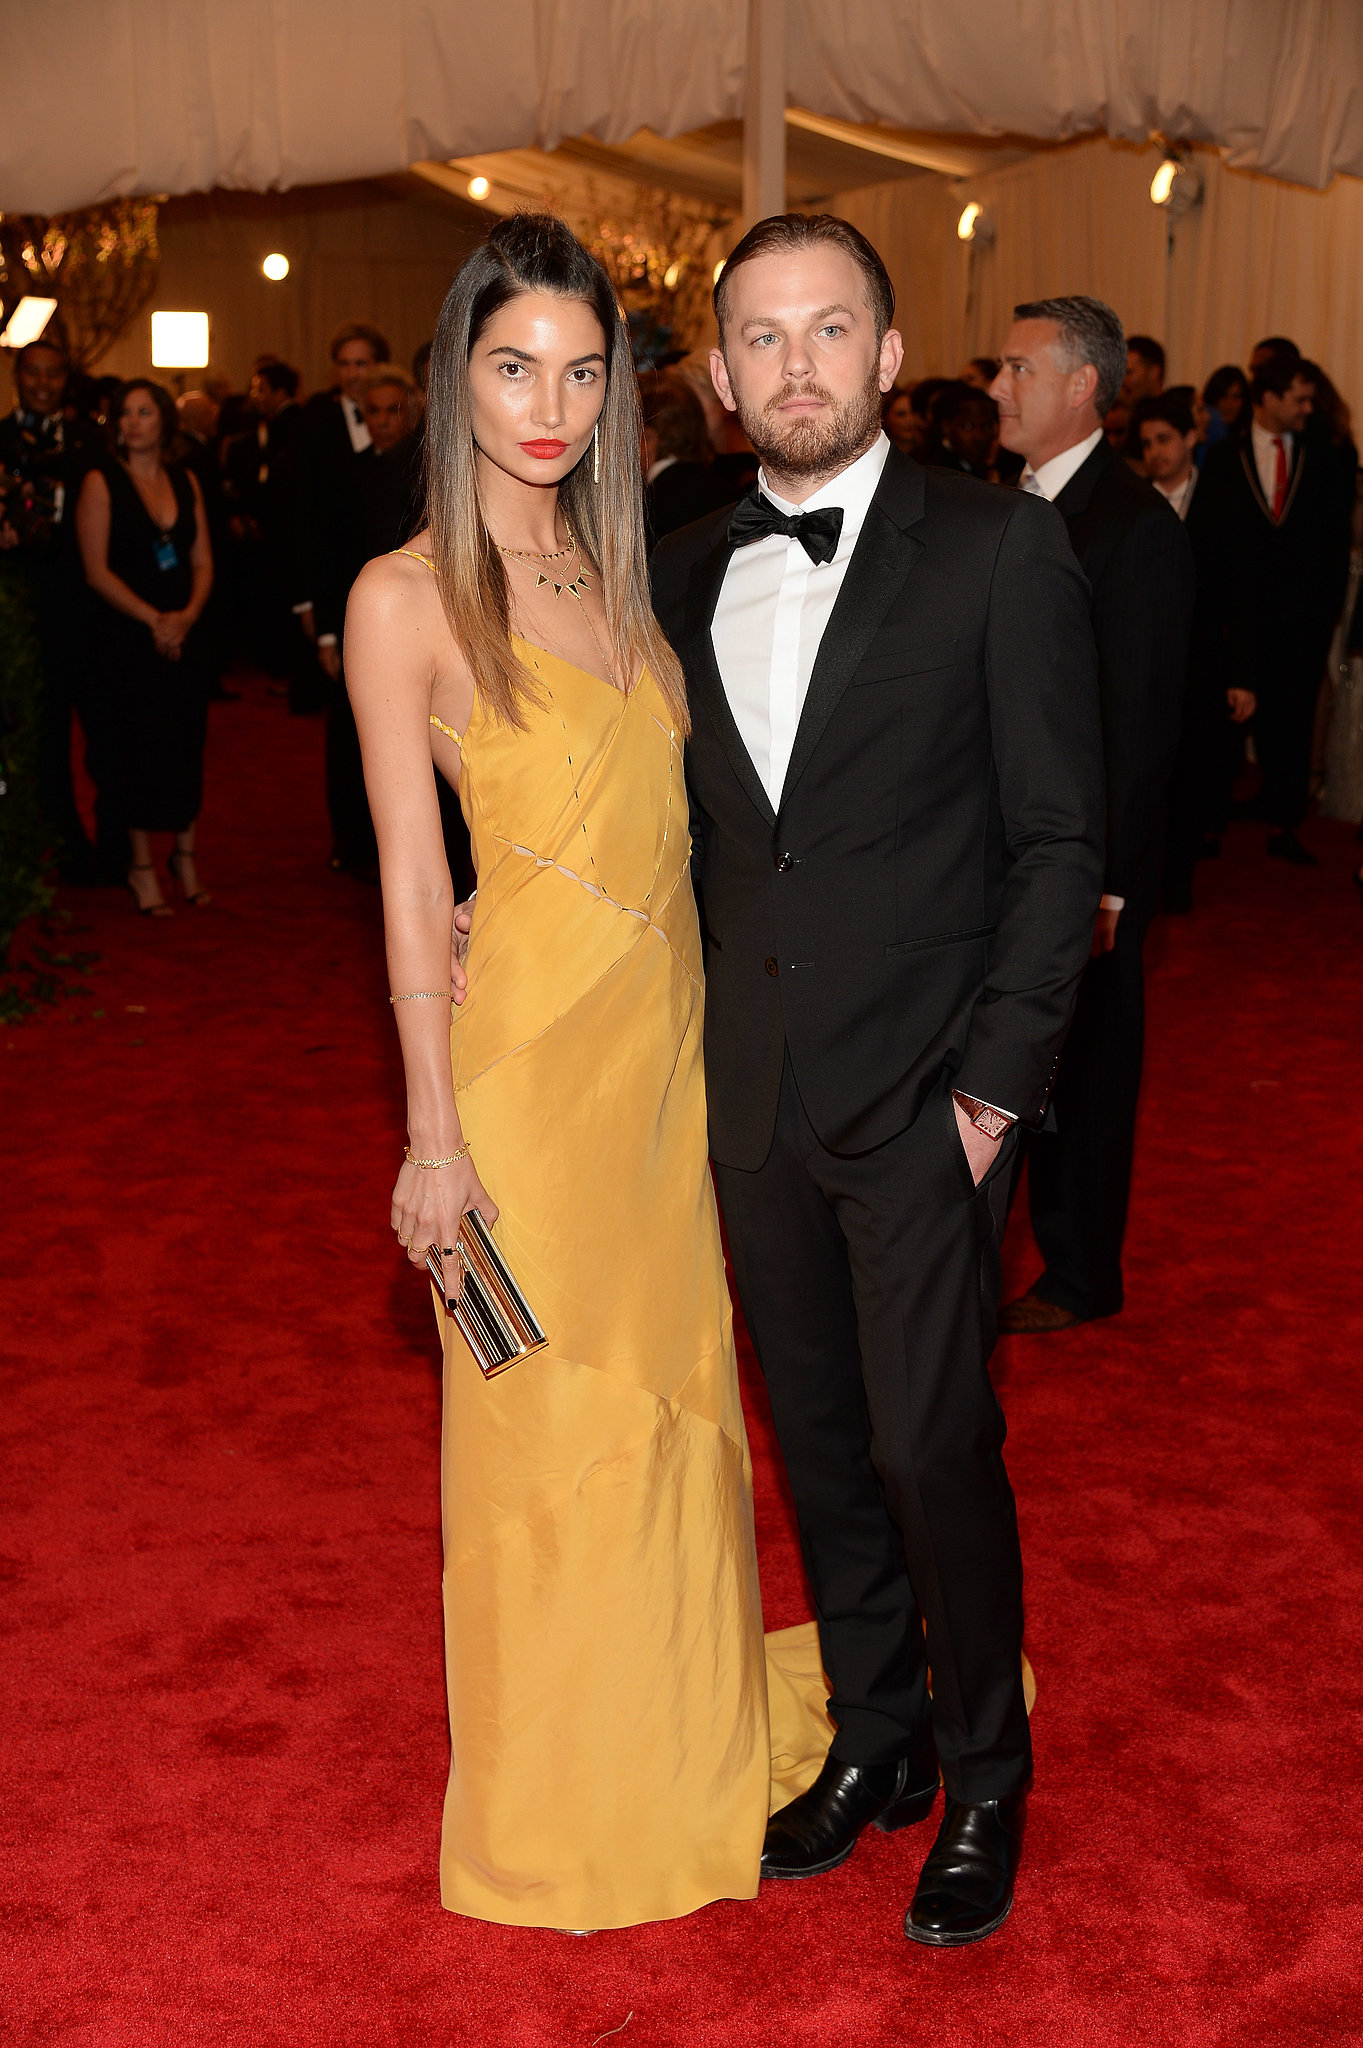 Lily Aldridge and Caleb Followill in 2013Lily Aldridge And Caleb Followill 2014